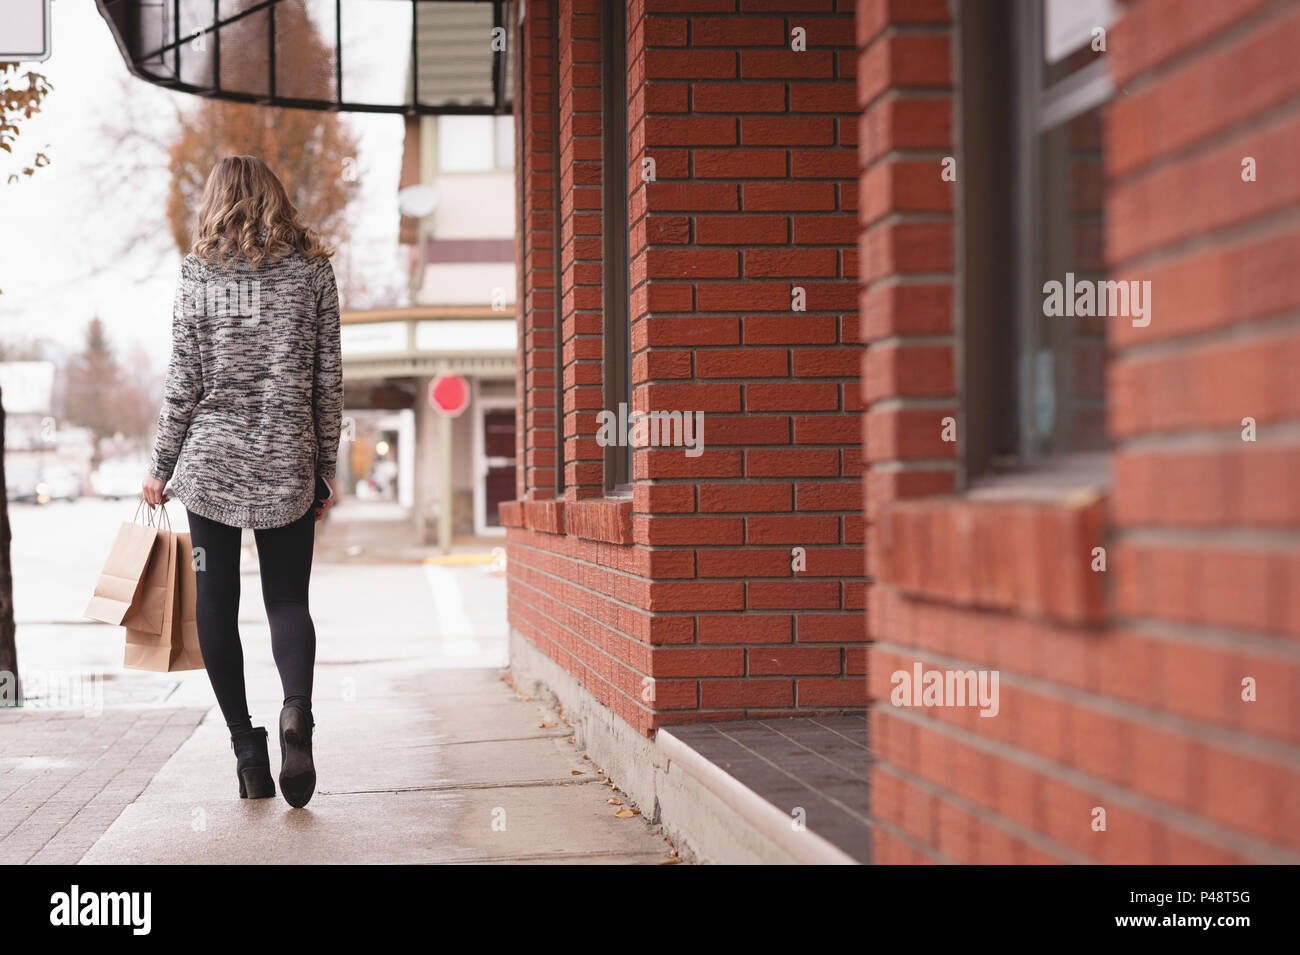 Rear view of woman with shopping bag walking in passage - Stock Image